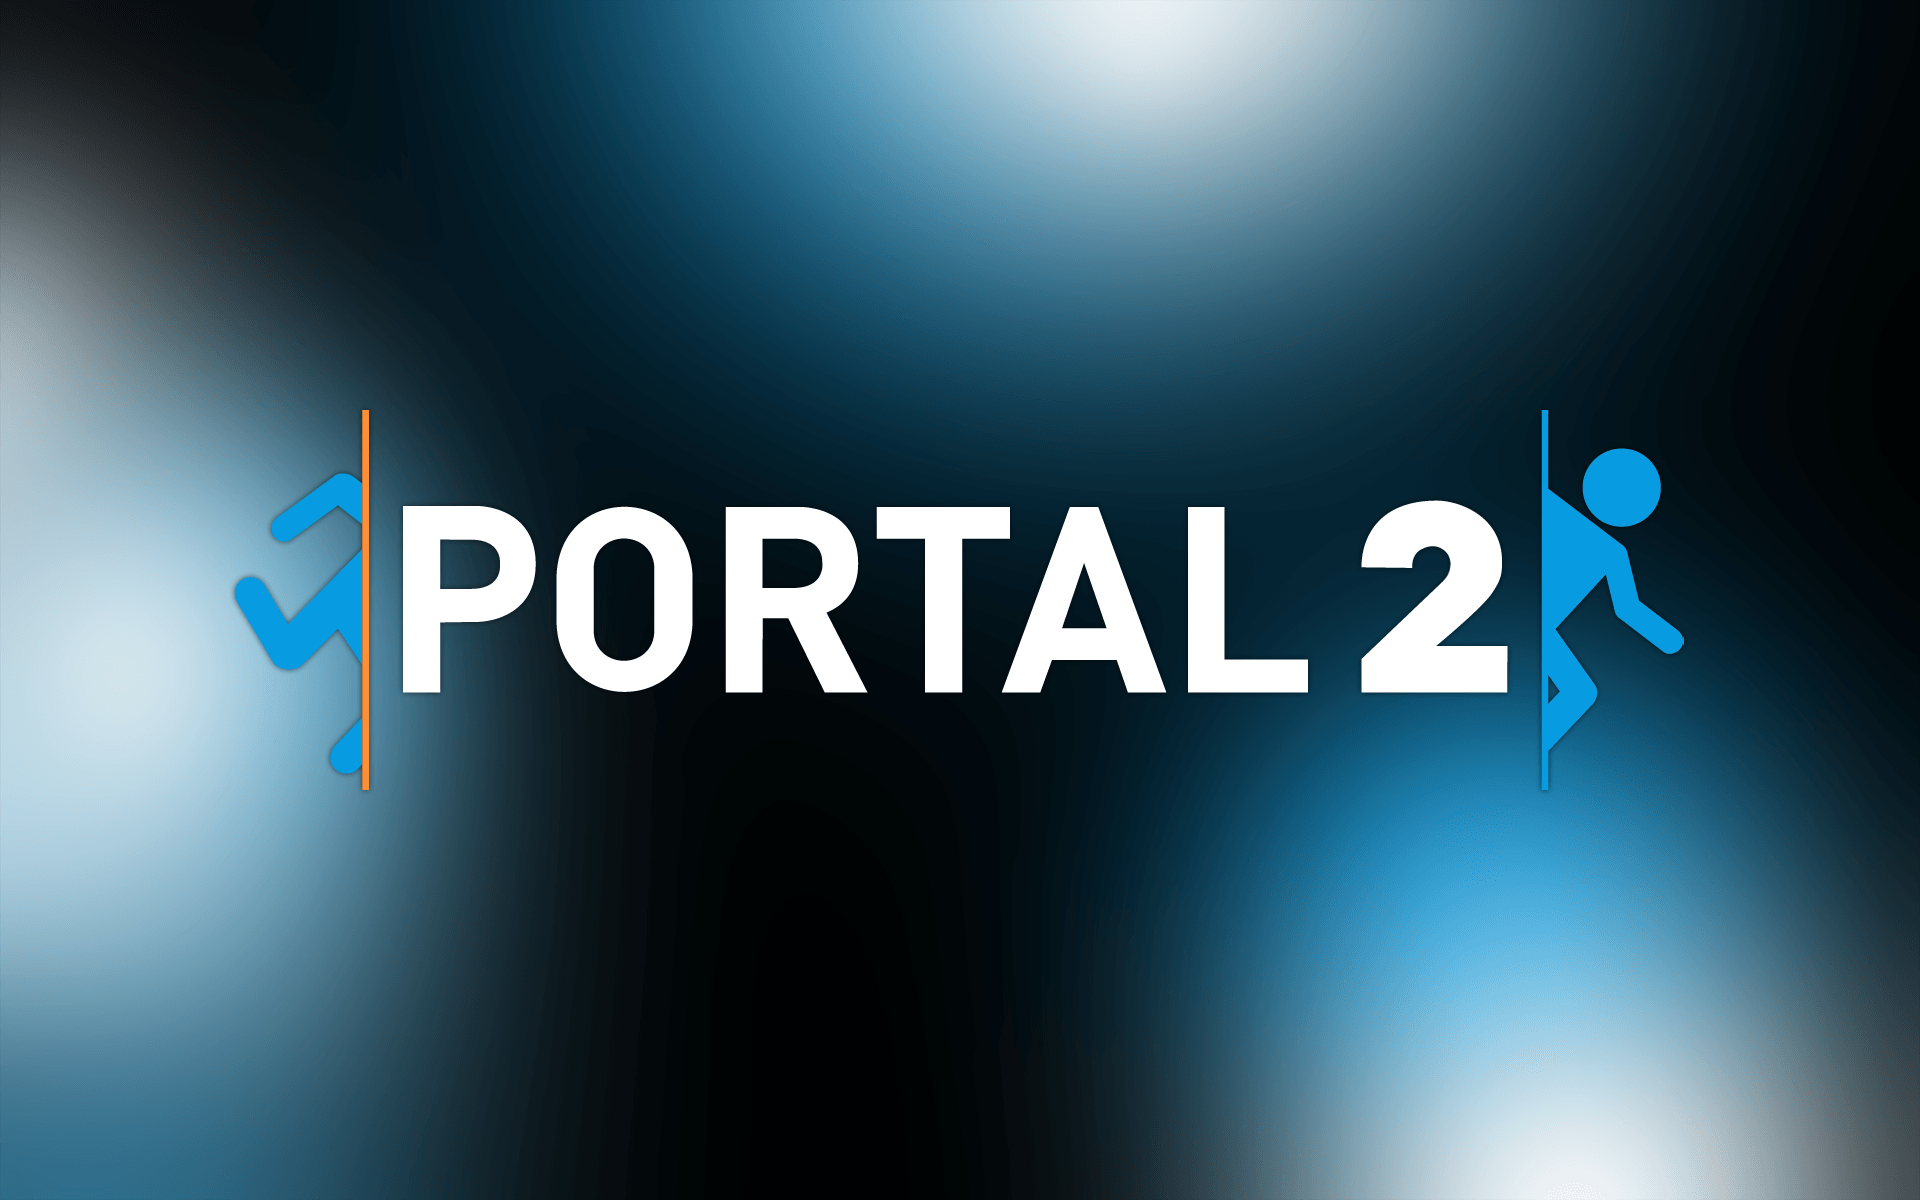 Portal2 Wallpapers